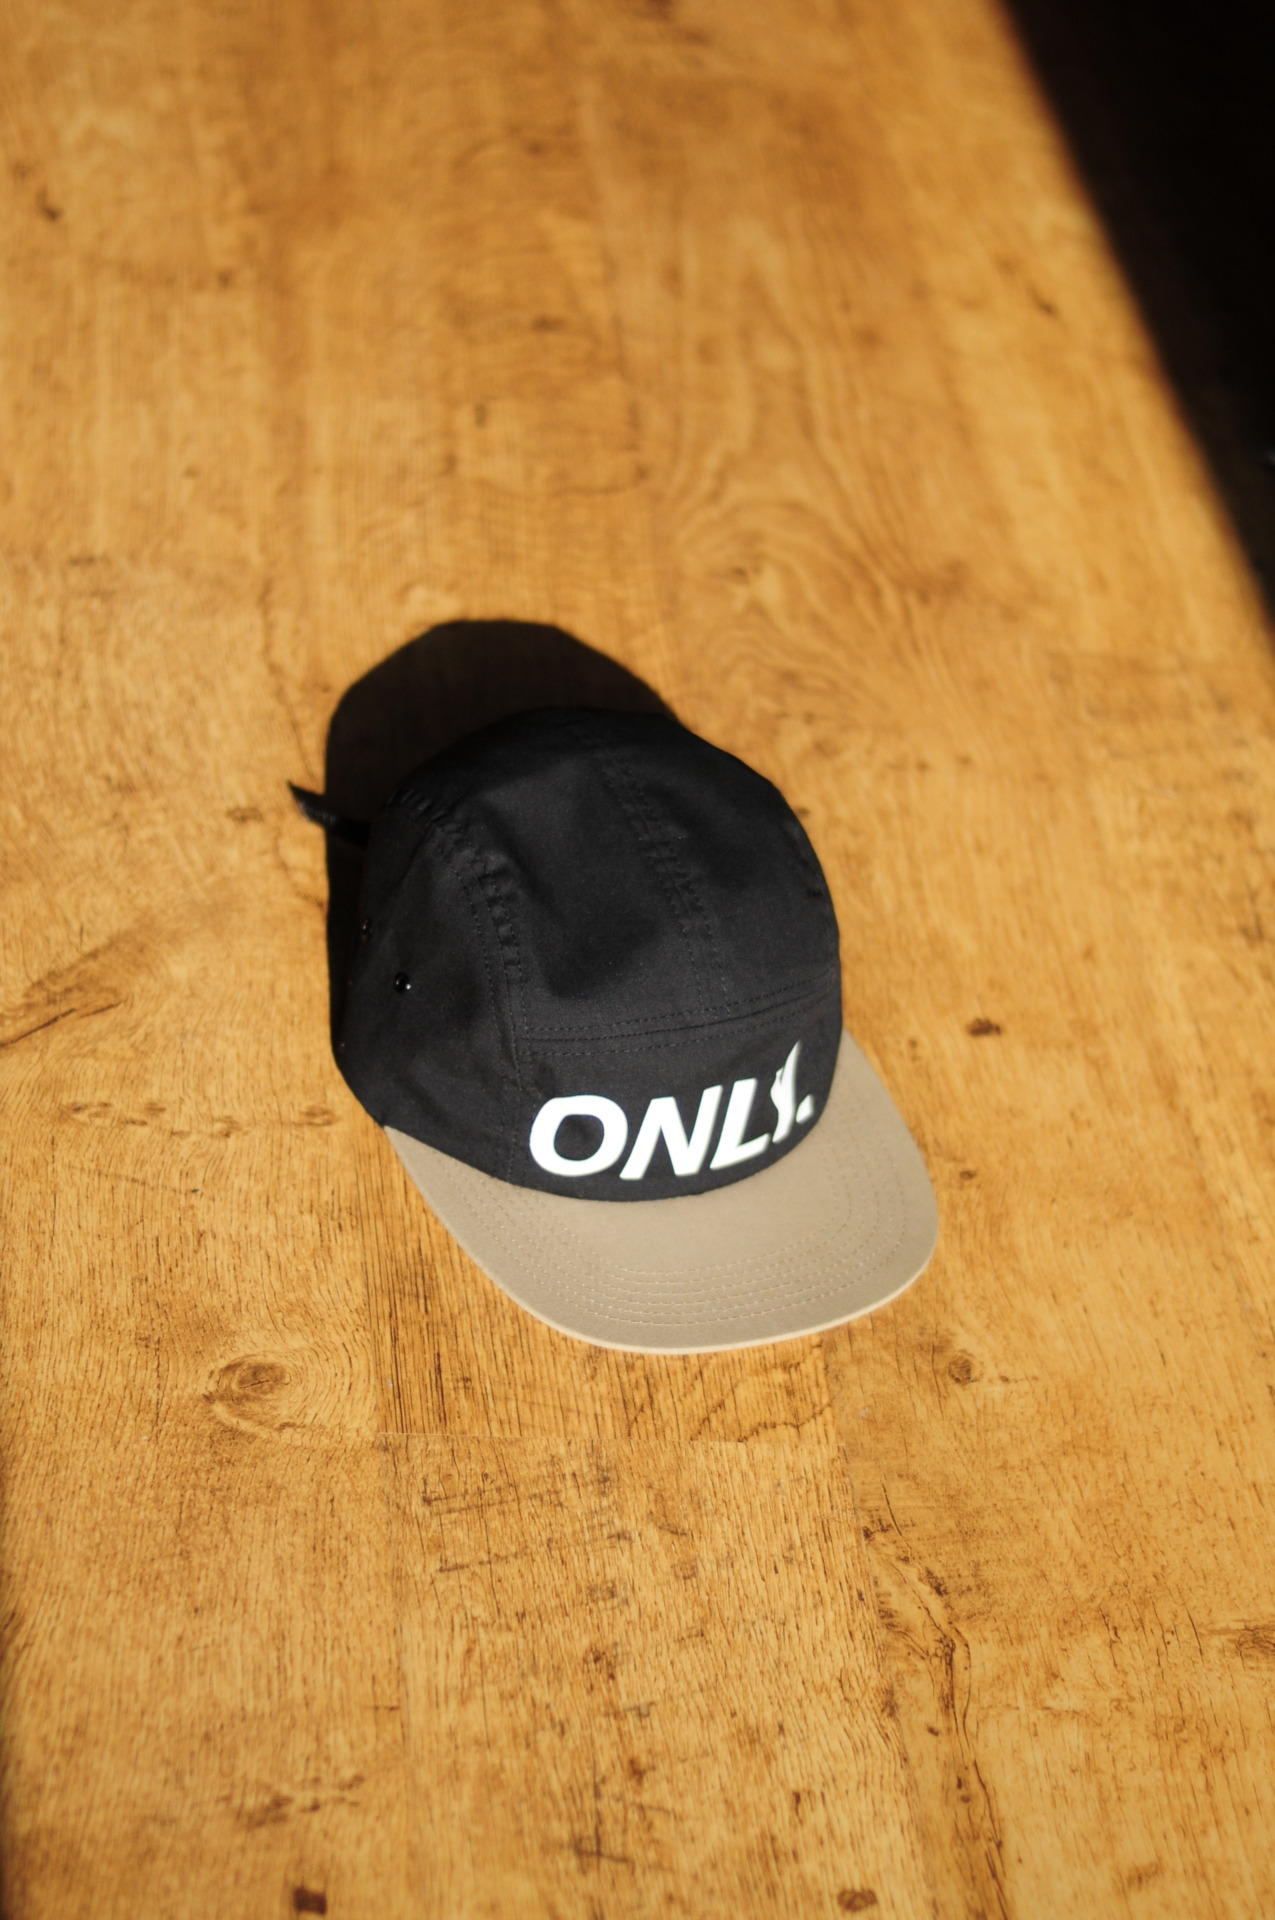 ONLY NY 5 PANEL / Going up on Ebay tonight